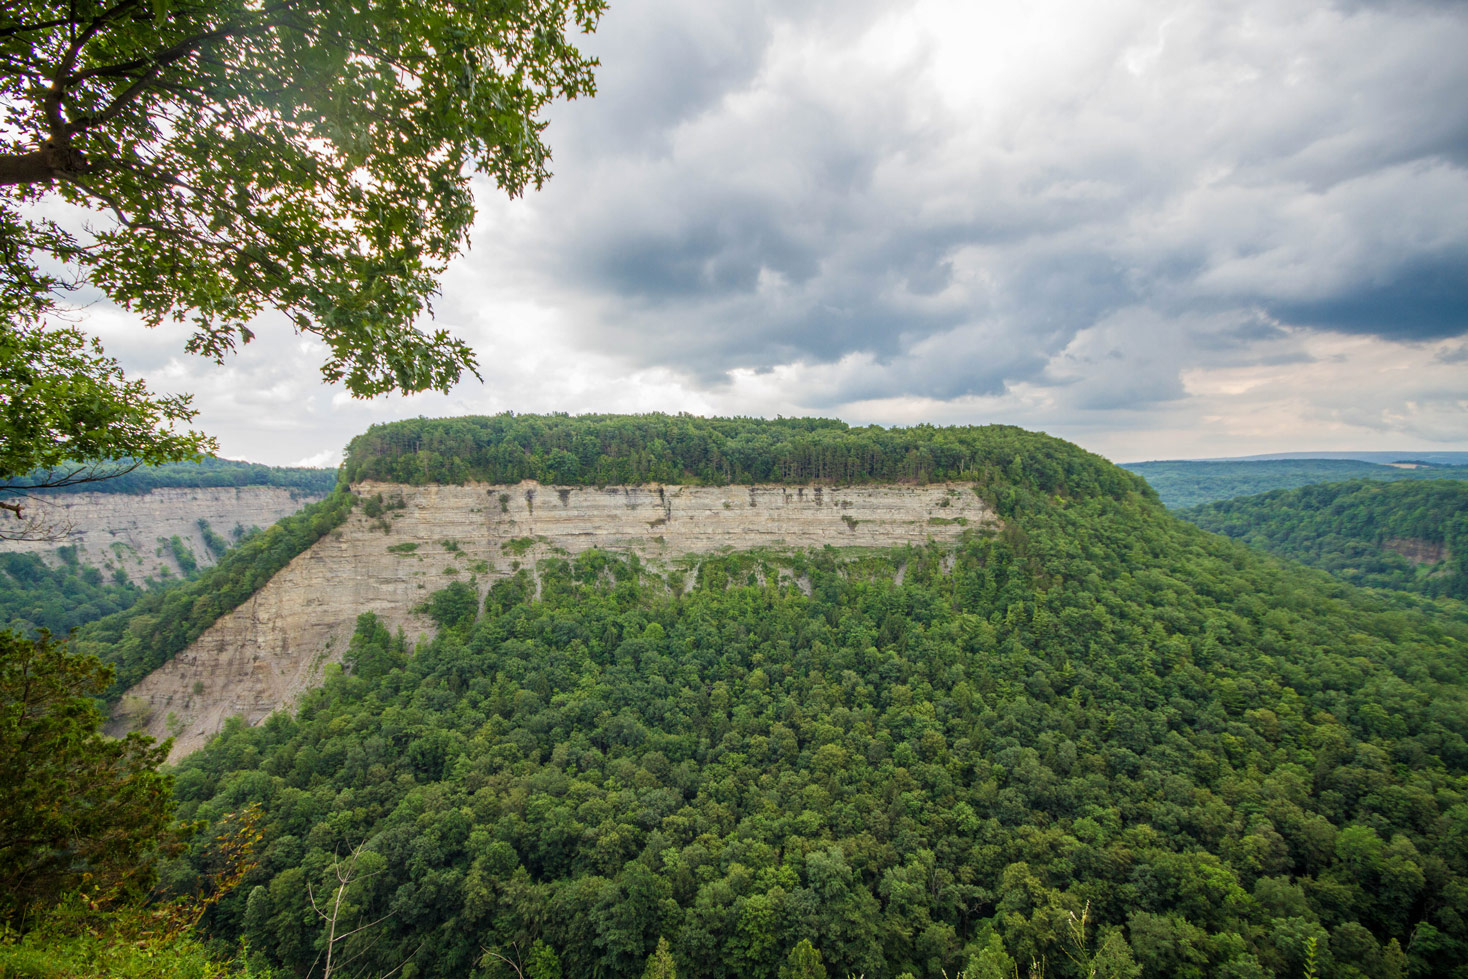 A gorge wall topped with trees above a calm river at Big Bend in Letchworth State Park in New York State